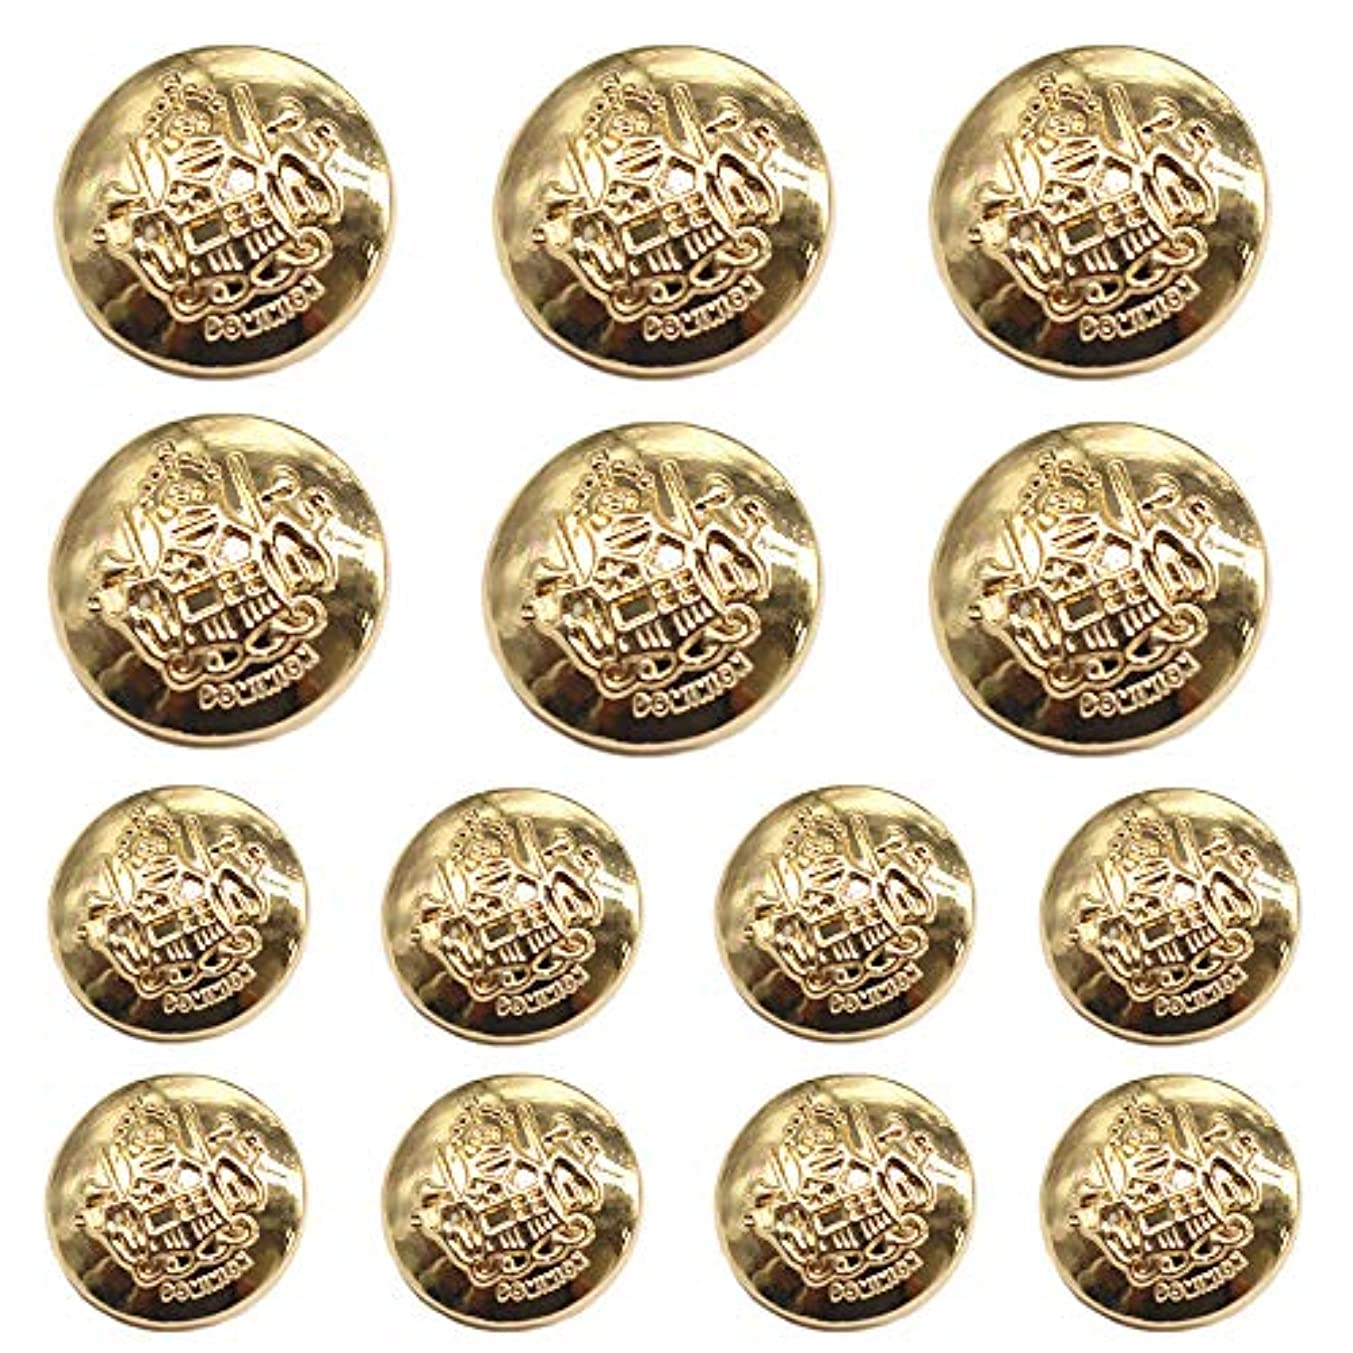 YaHoGa 14pcs Gold Blazer Buttons for Suits Blazers Sport Coats 20mm 15mm Metal Shank Blazer Buttons Set for Sewing Coats Suits Blazers (MB20100)